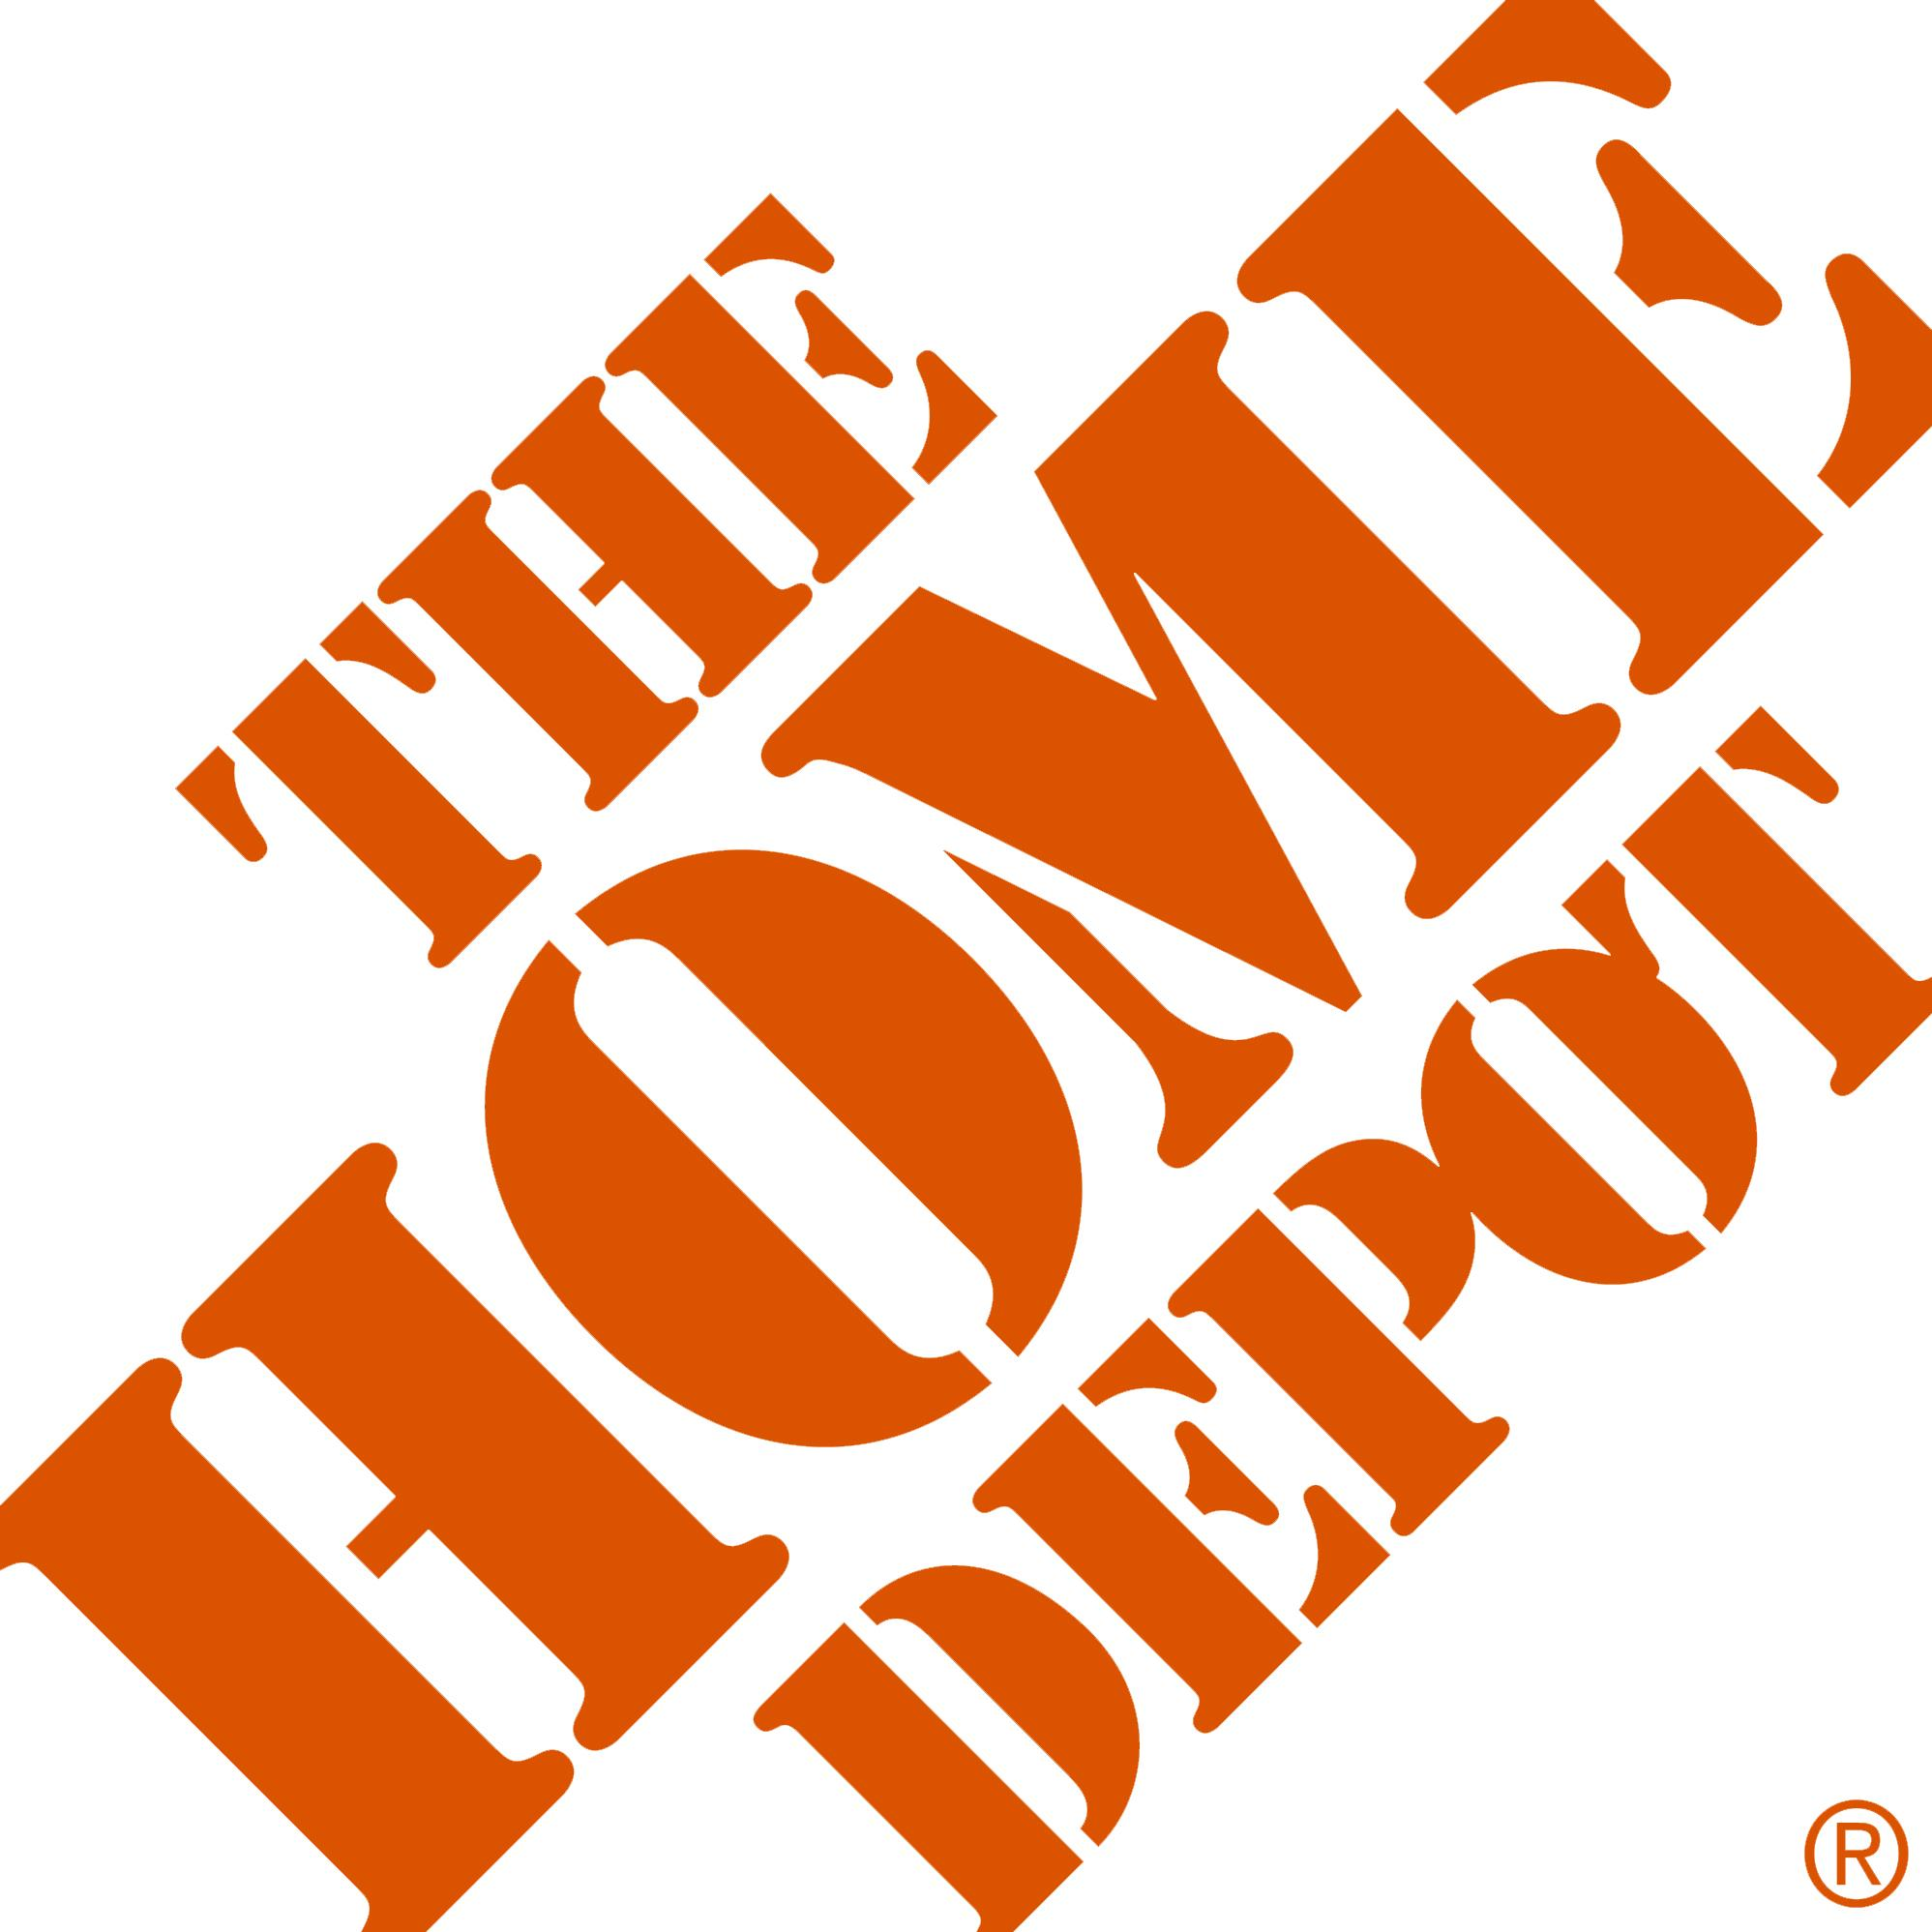 the home depot, inc. market trends essay Home depot (hd) shares had a fine 2013, climbing around 35%, to a record high in the low $80s in fact, the dow component seemed to have the wind at its back throughout the year, thanks to information technology and supply chain upgrades, good expense leverage, market-share gains, and the early stages of what promises to be a lengthy housing recovery.